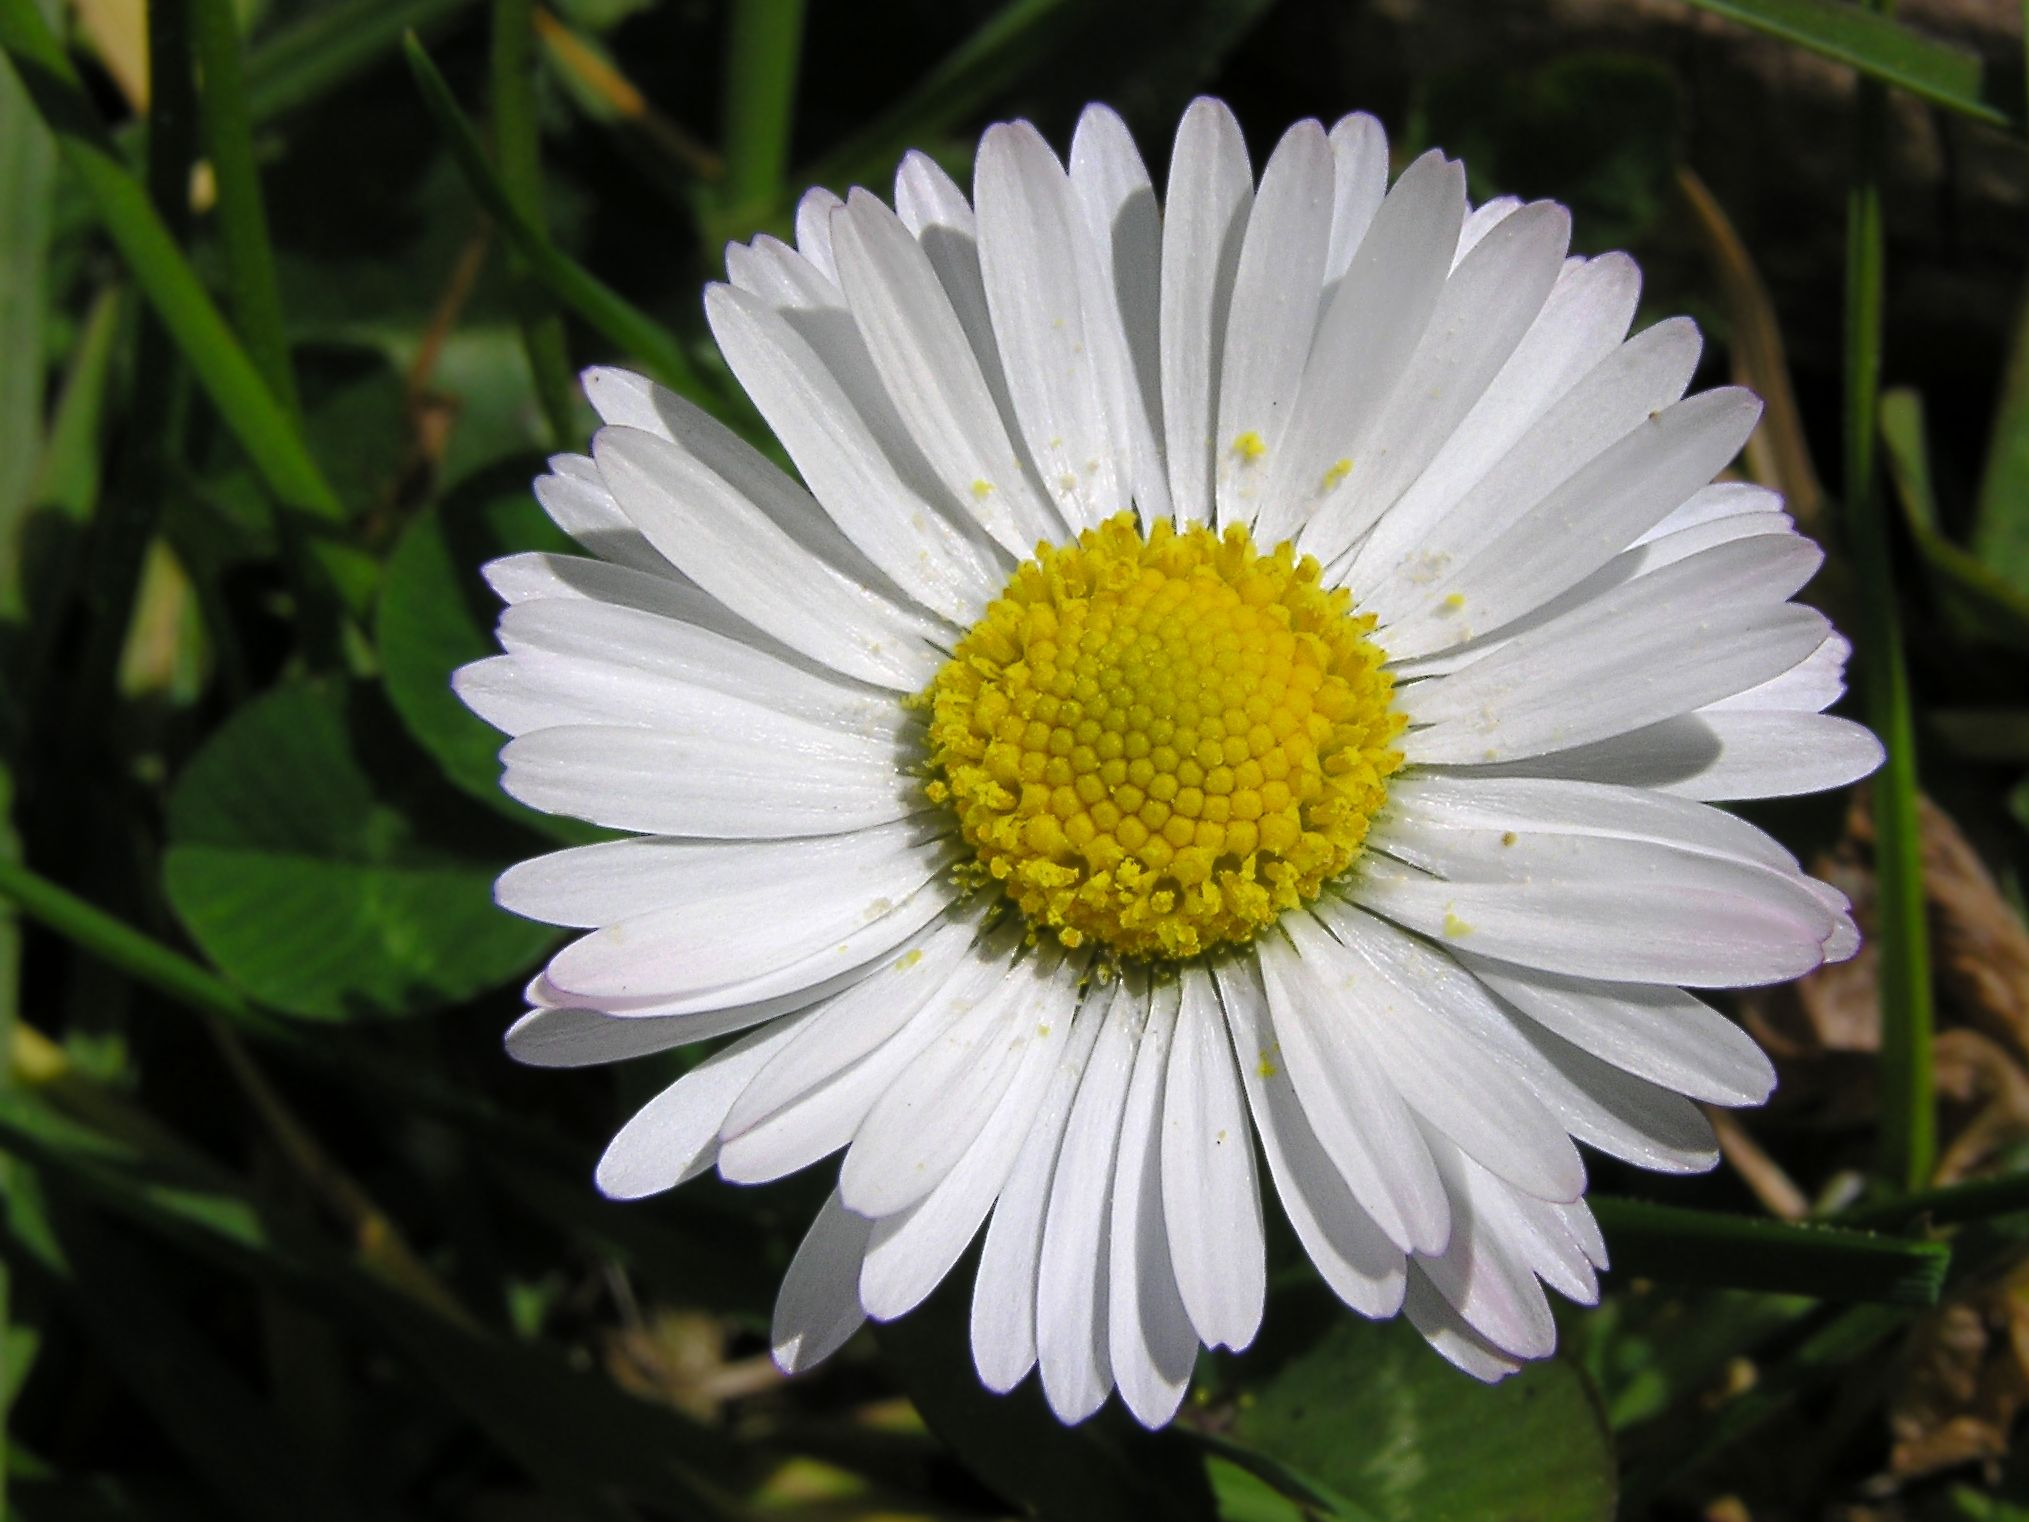 Perennials daisy flowers daisy flowers is basically from sunflower family this flower shows the simplicity faith and love daisy flowers have many colors like white yellow izmirmasajfo Images